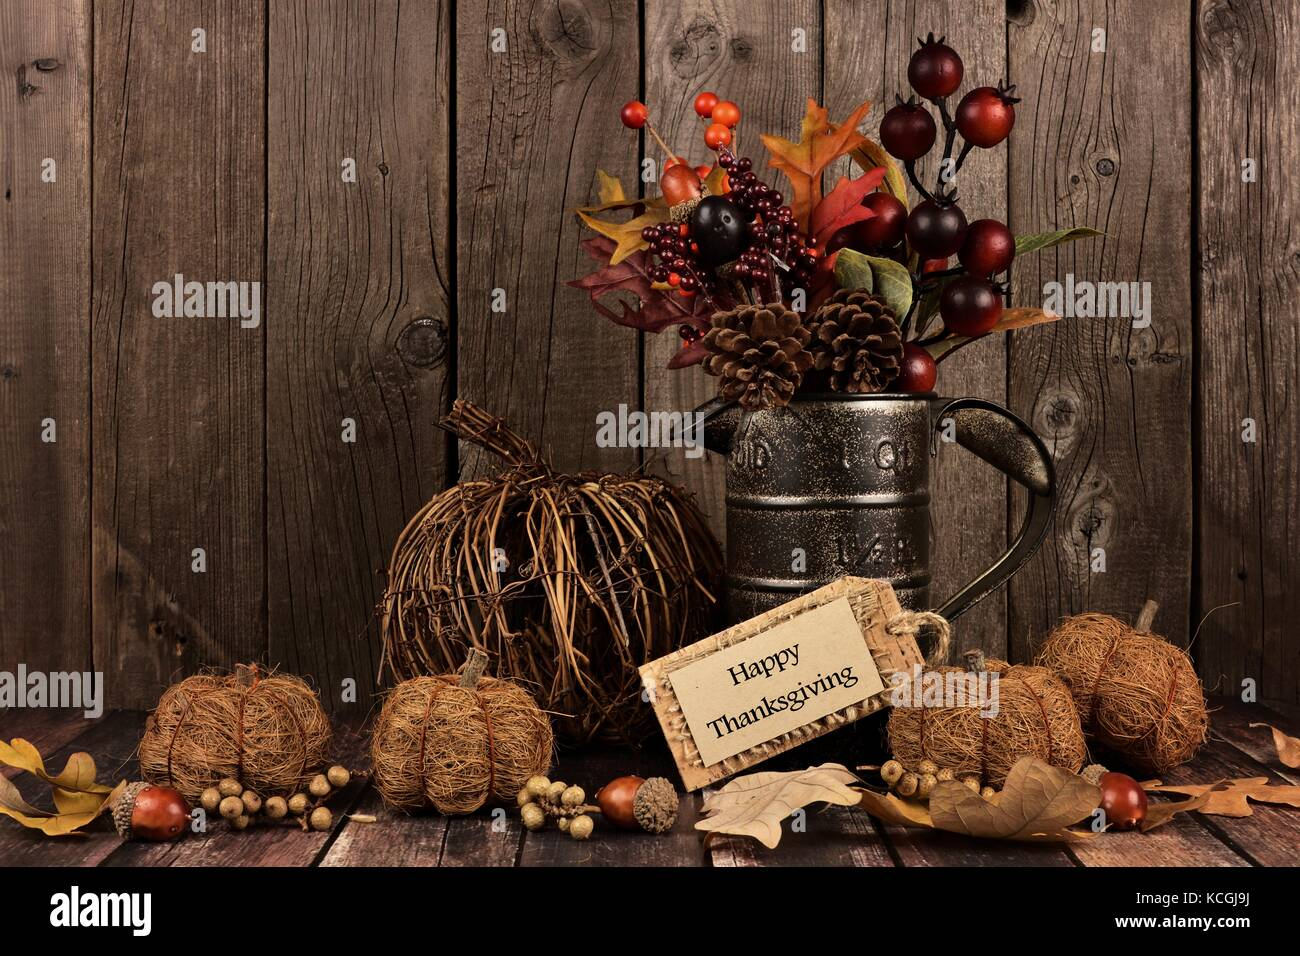 Happy Thanksgiving Tag Rustic Pumpkins And Autumn Home Decor With A Wood Background